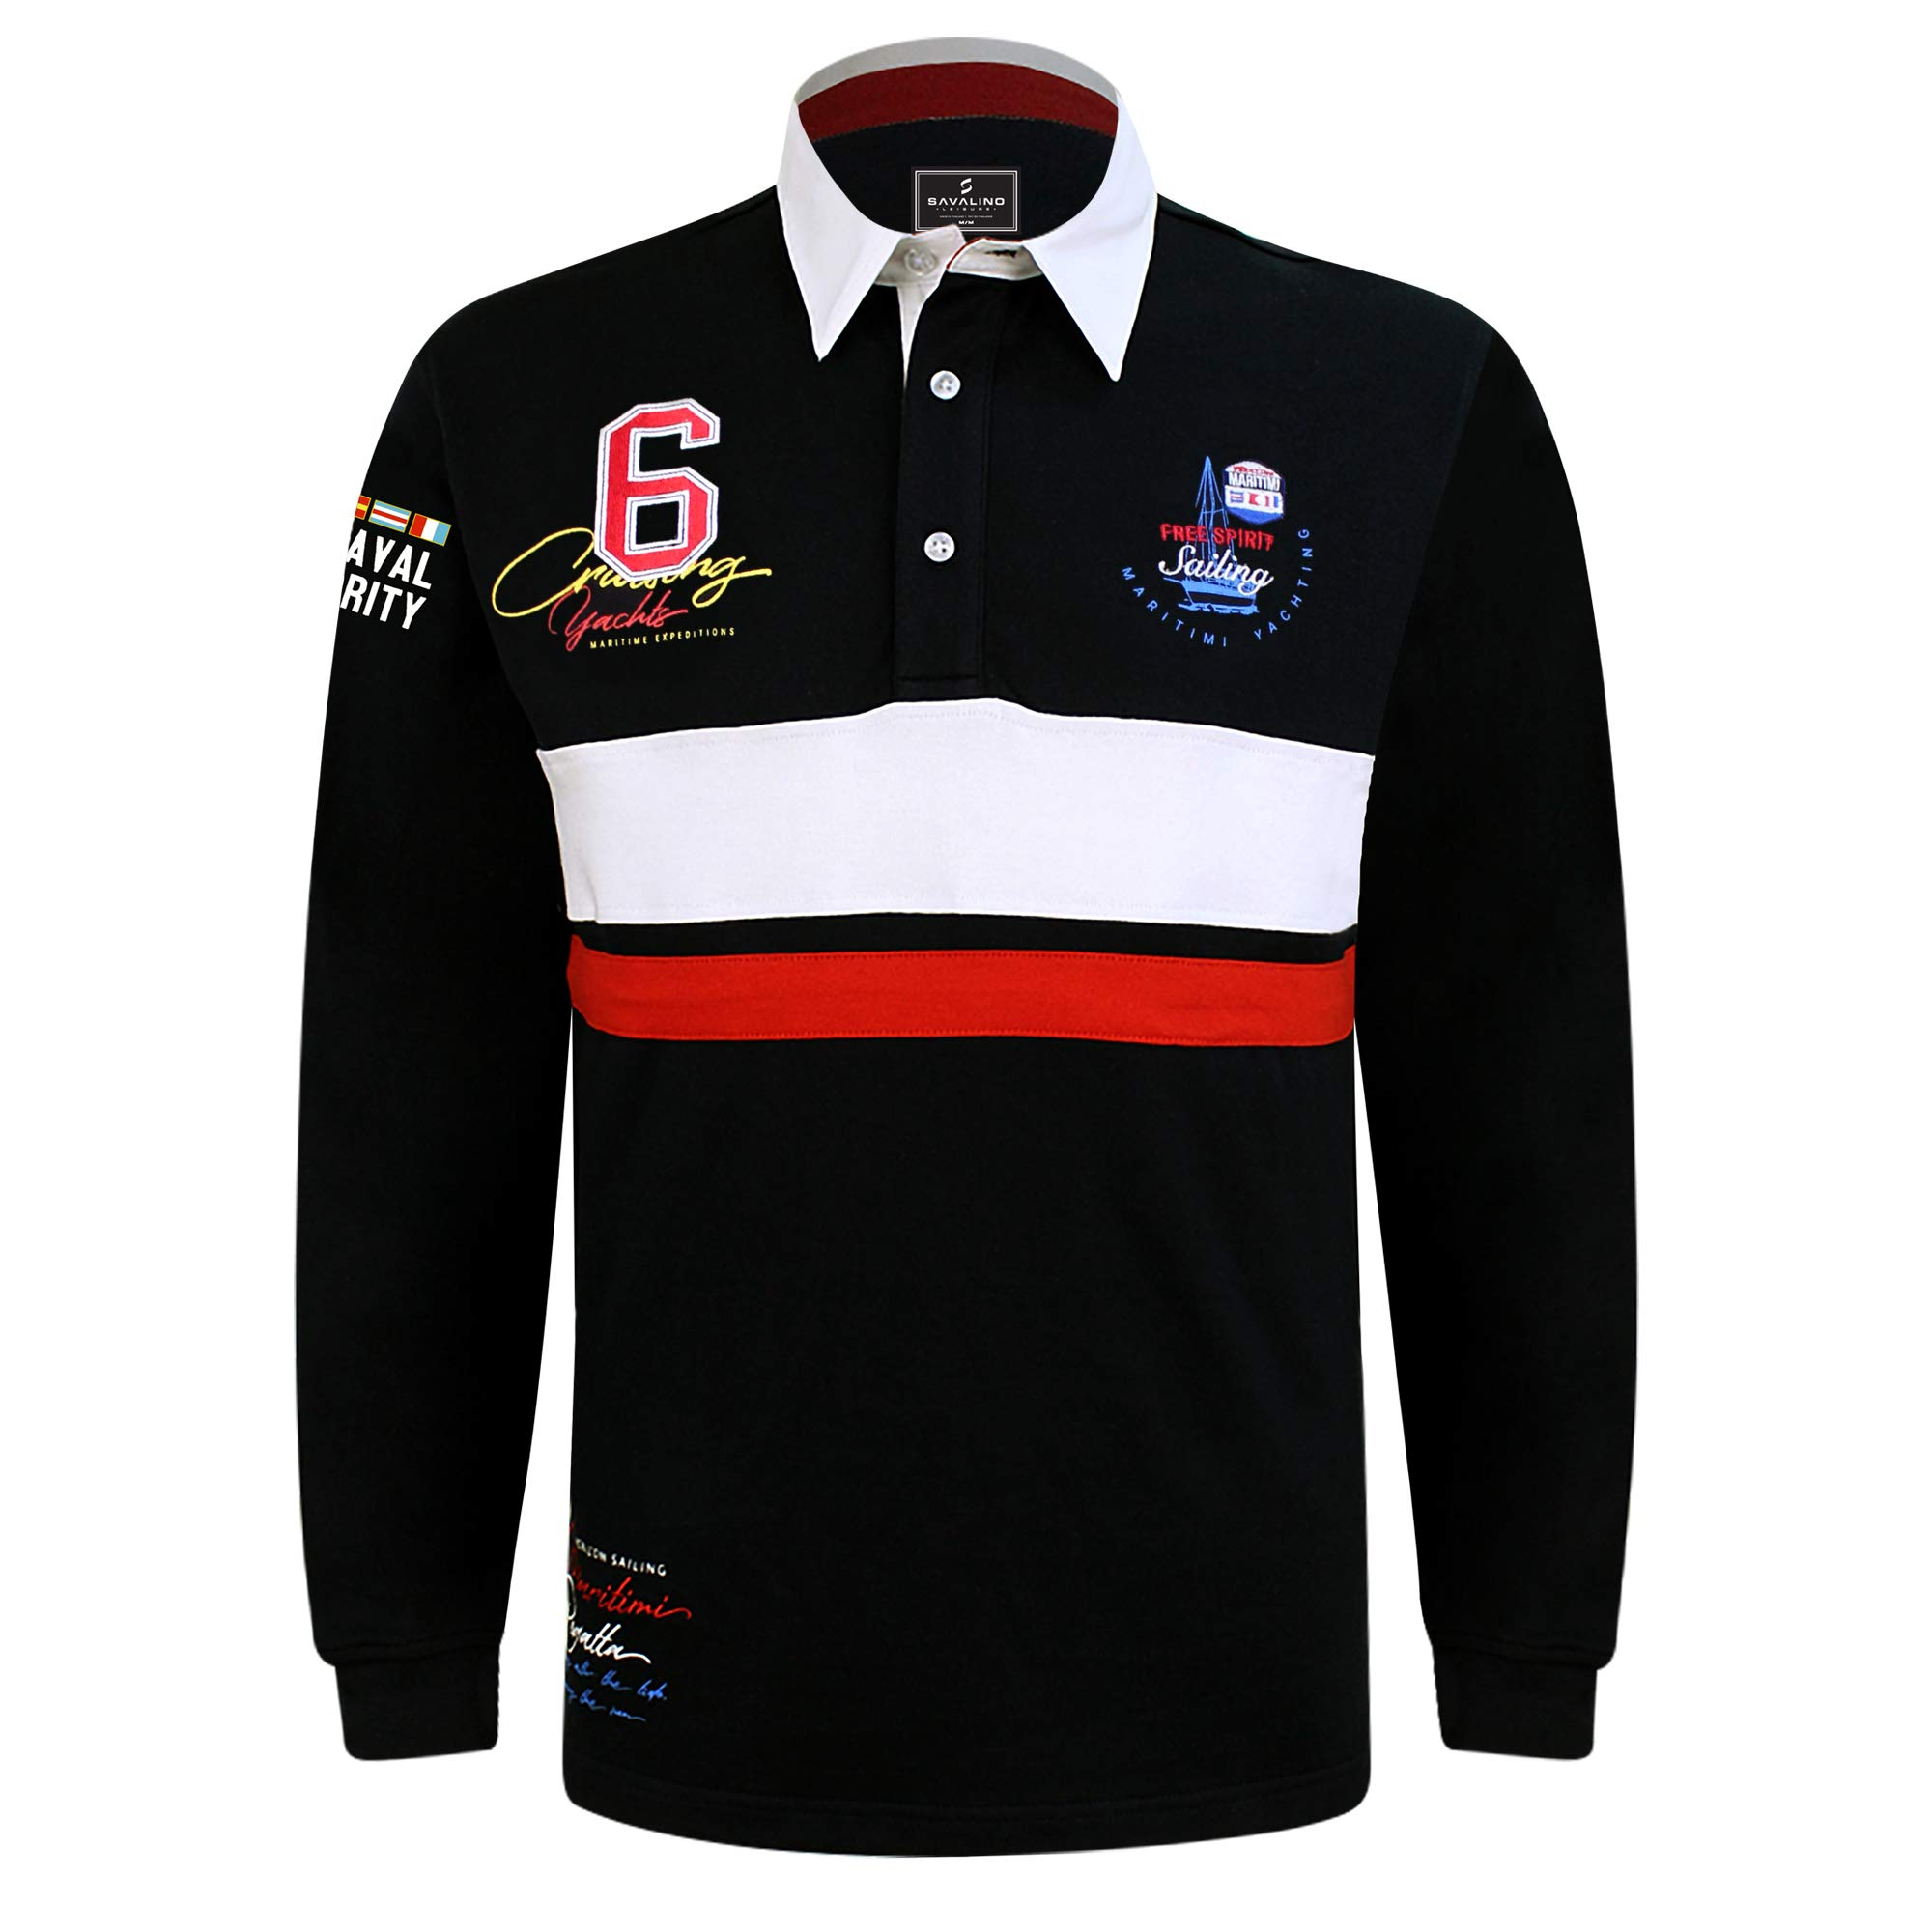 SAVALINO Men's Long Sleeve Polo Sailing Rugby Shirt with Twill Collar, Heavy Jersey, Sport & Leisure Wear, Size S-3XL